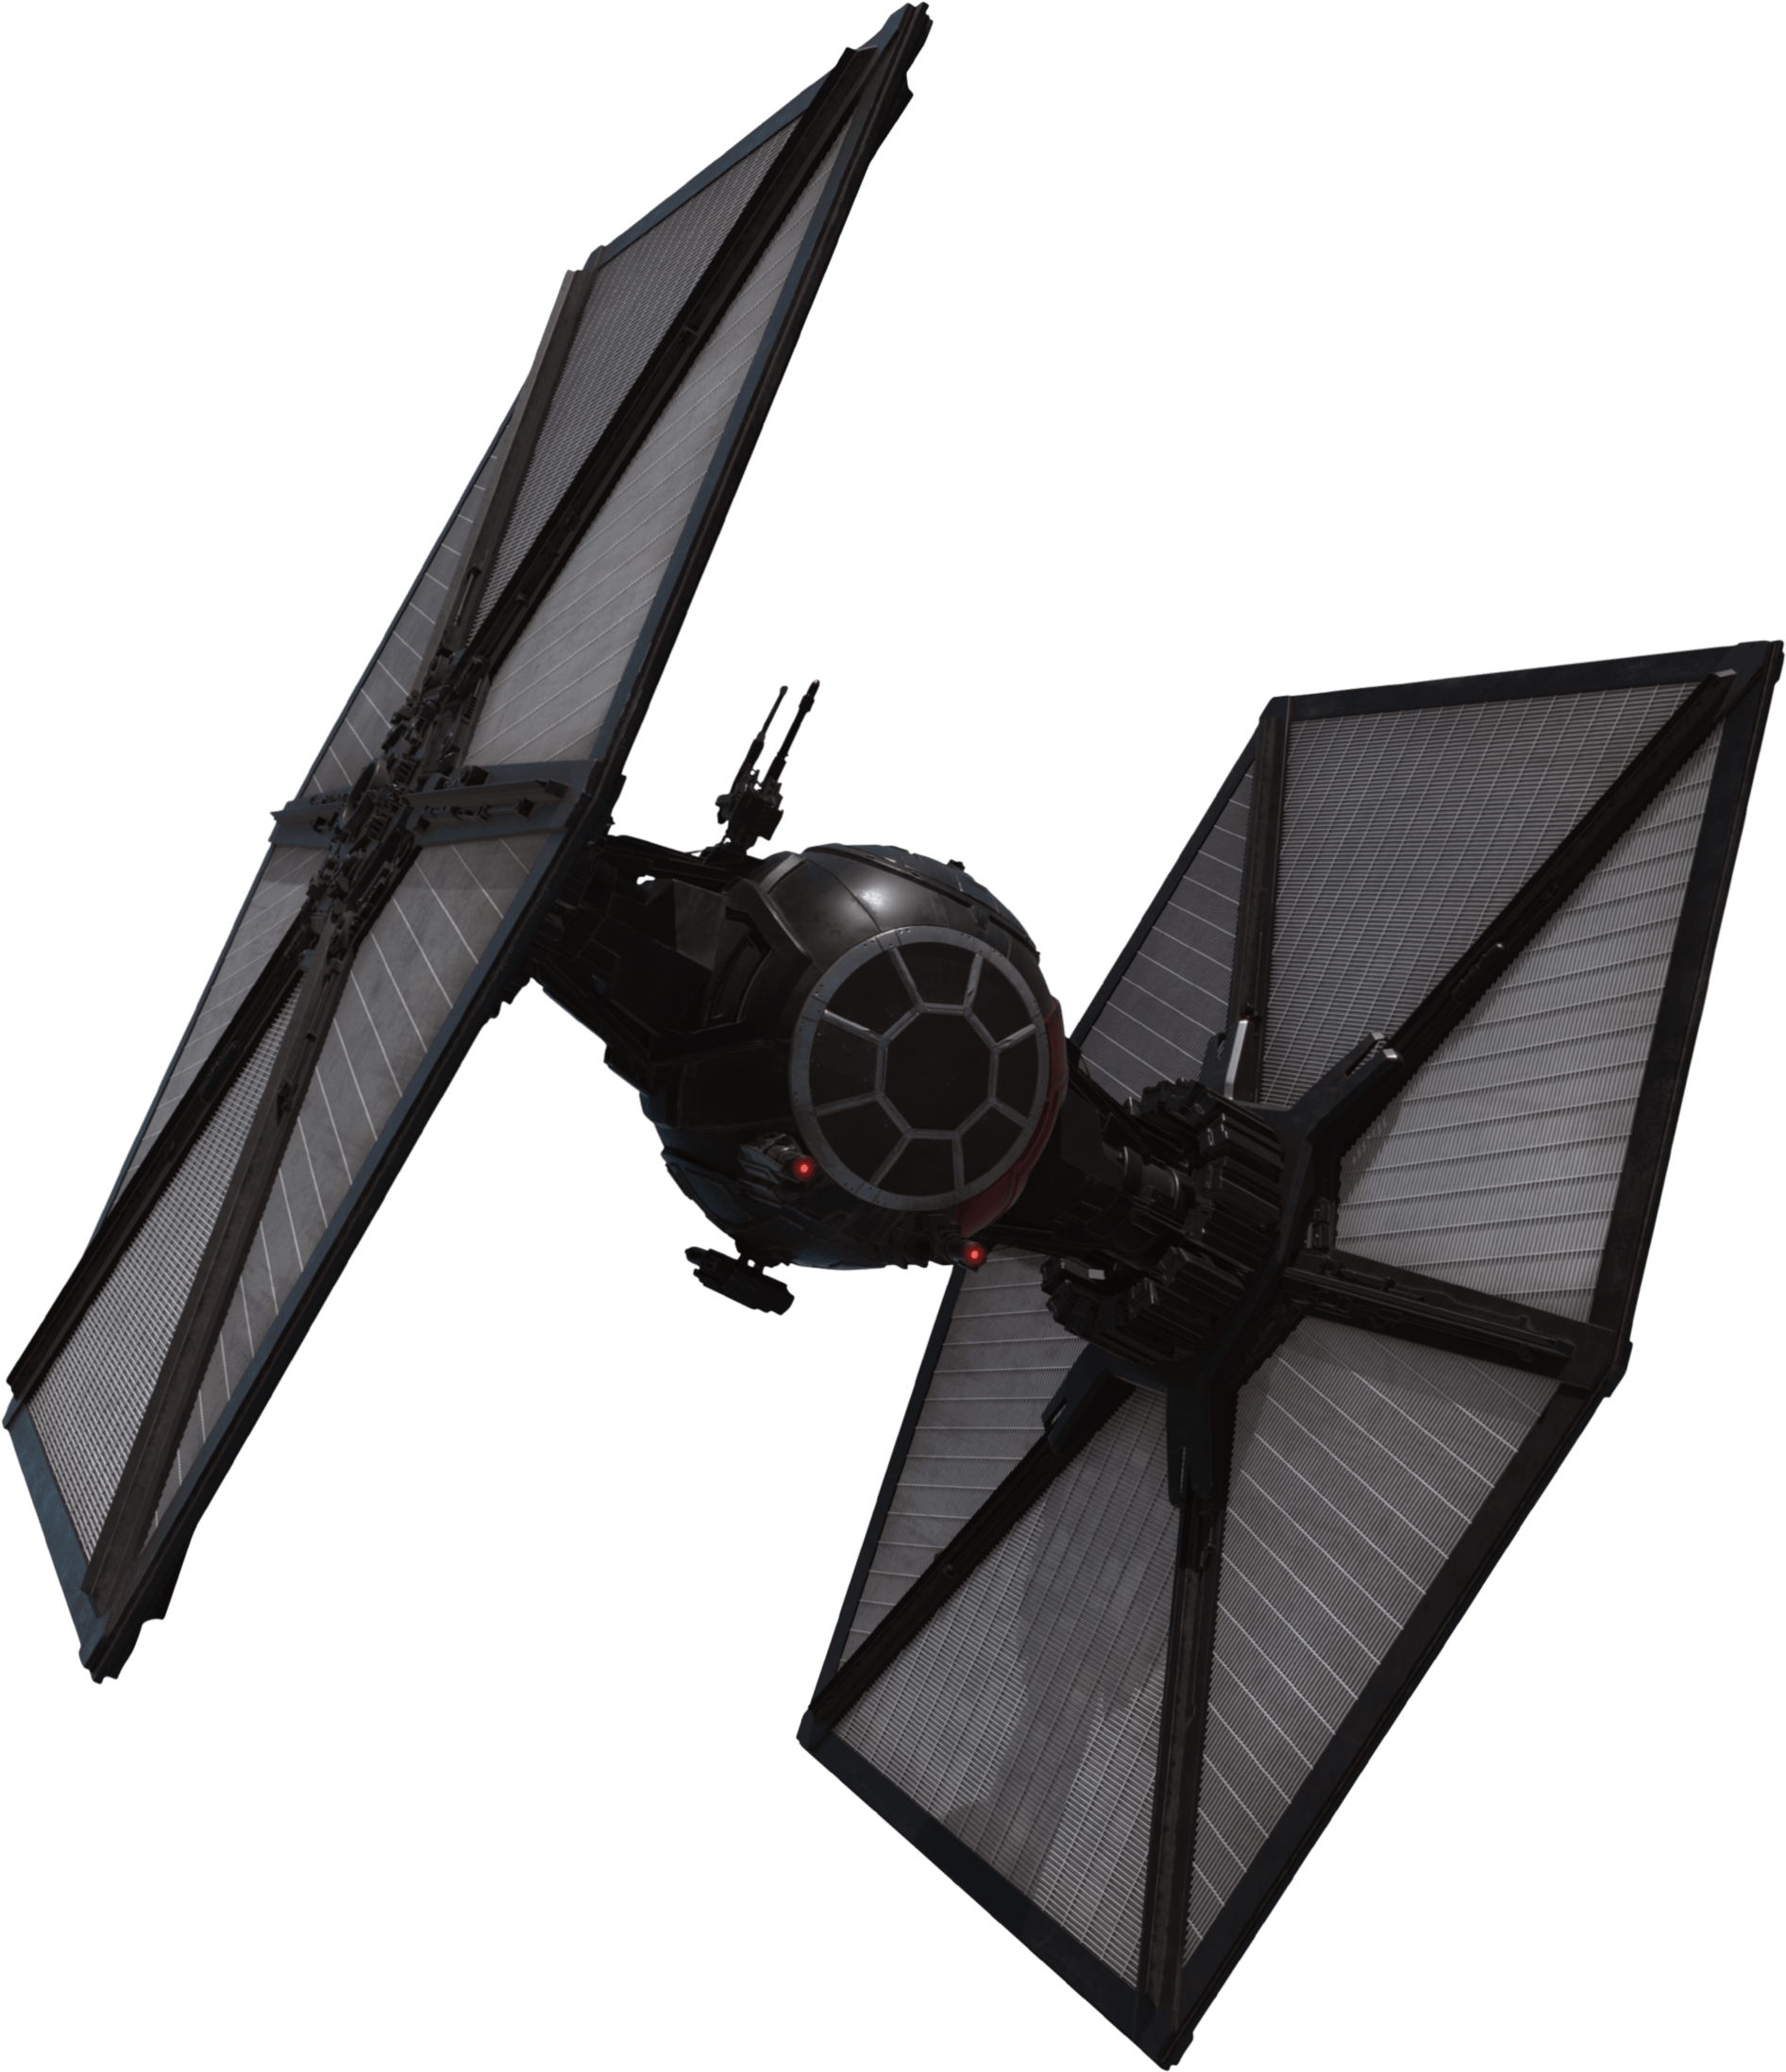 Star wars fighter clipart png black and white download Tie Fighter Transparent Star Wars Png png black and white download